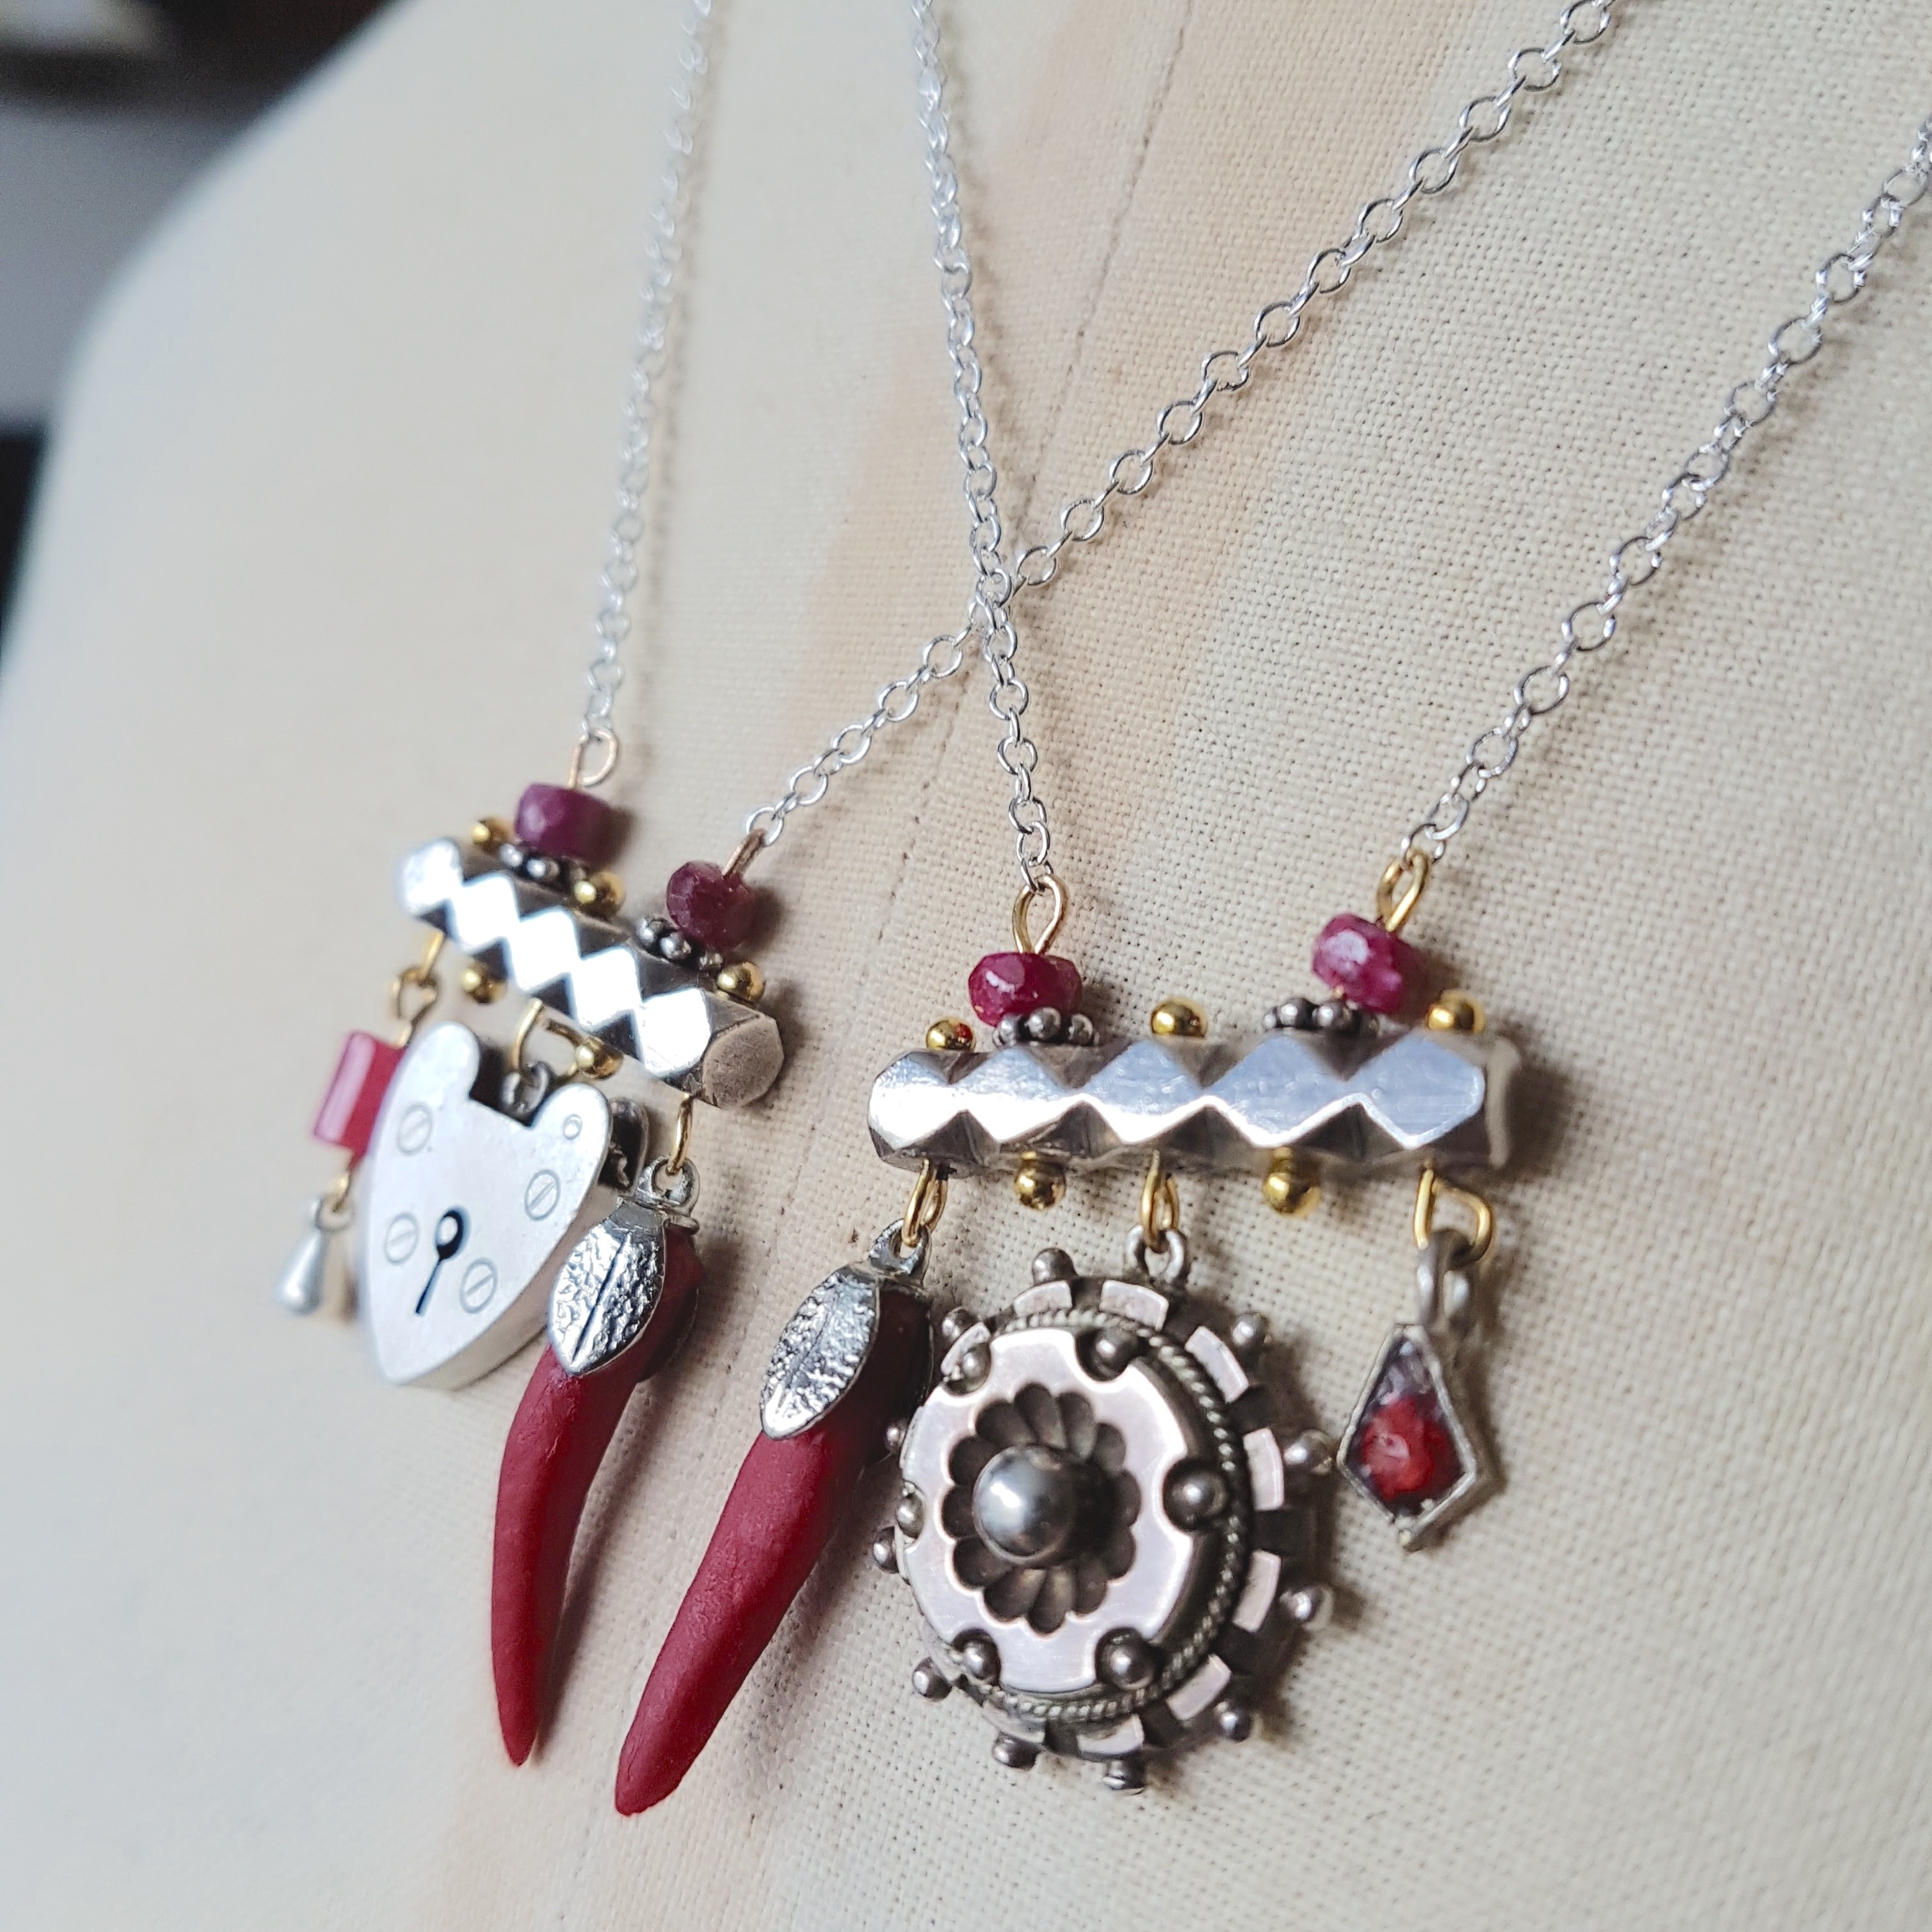 b8a8c34175b1f Silver And Ruby Bohemian Charm Necklaces